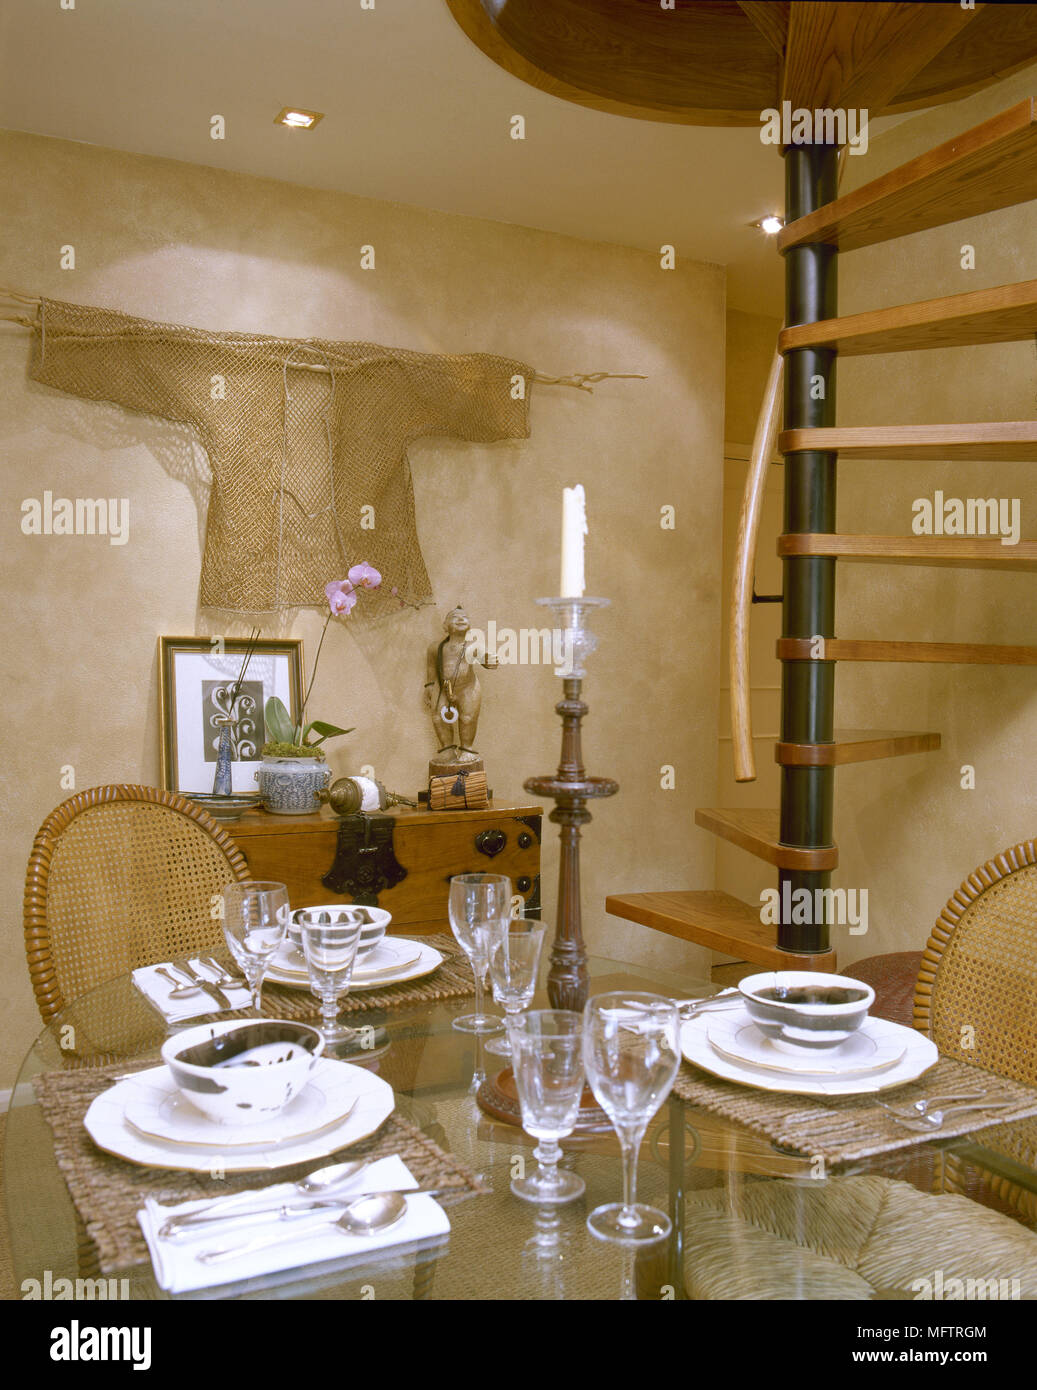 Country Dining Room With Textured Plaster Walls, Floating Spiral Staircase,  And A Glass Top Dining Table With Wicker Chairs.